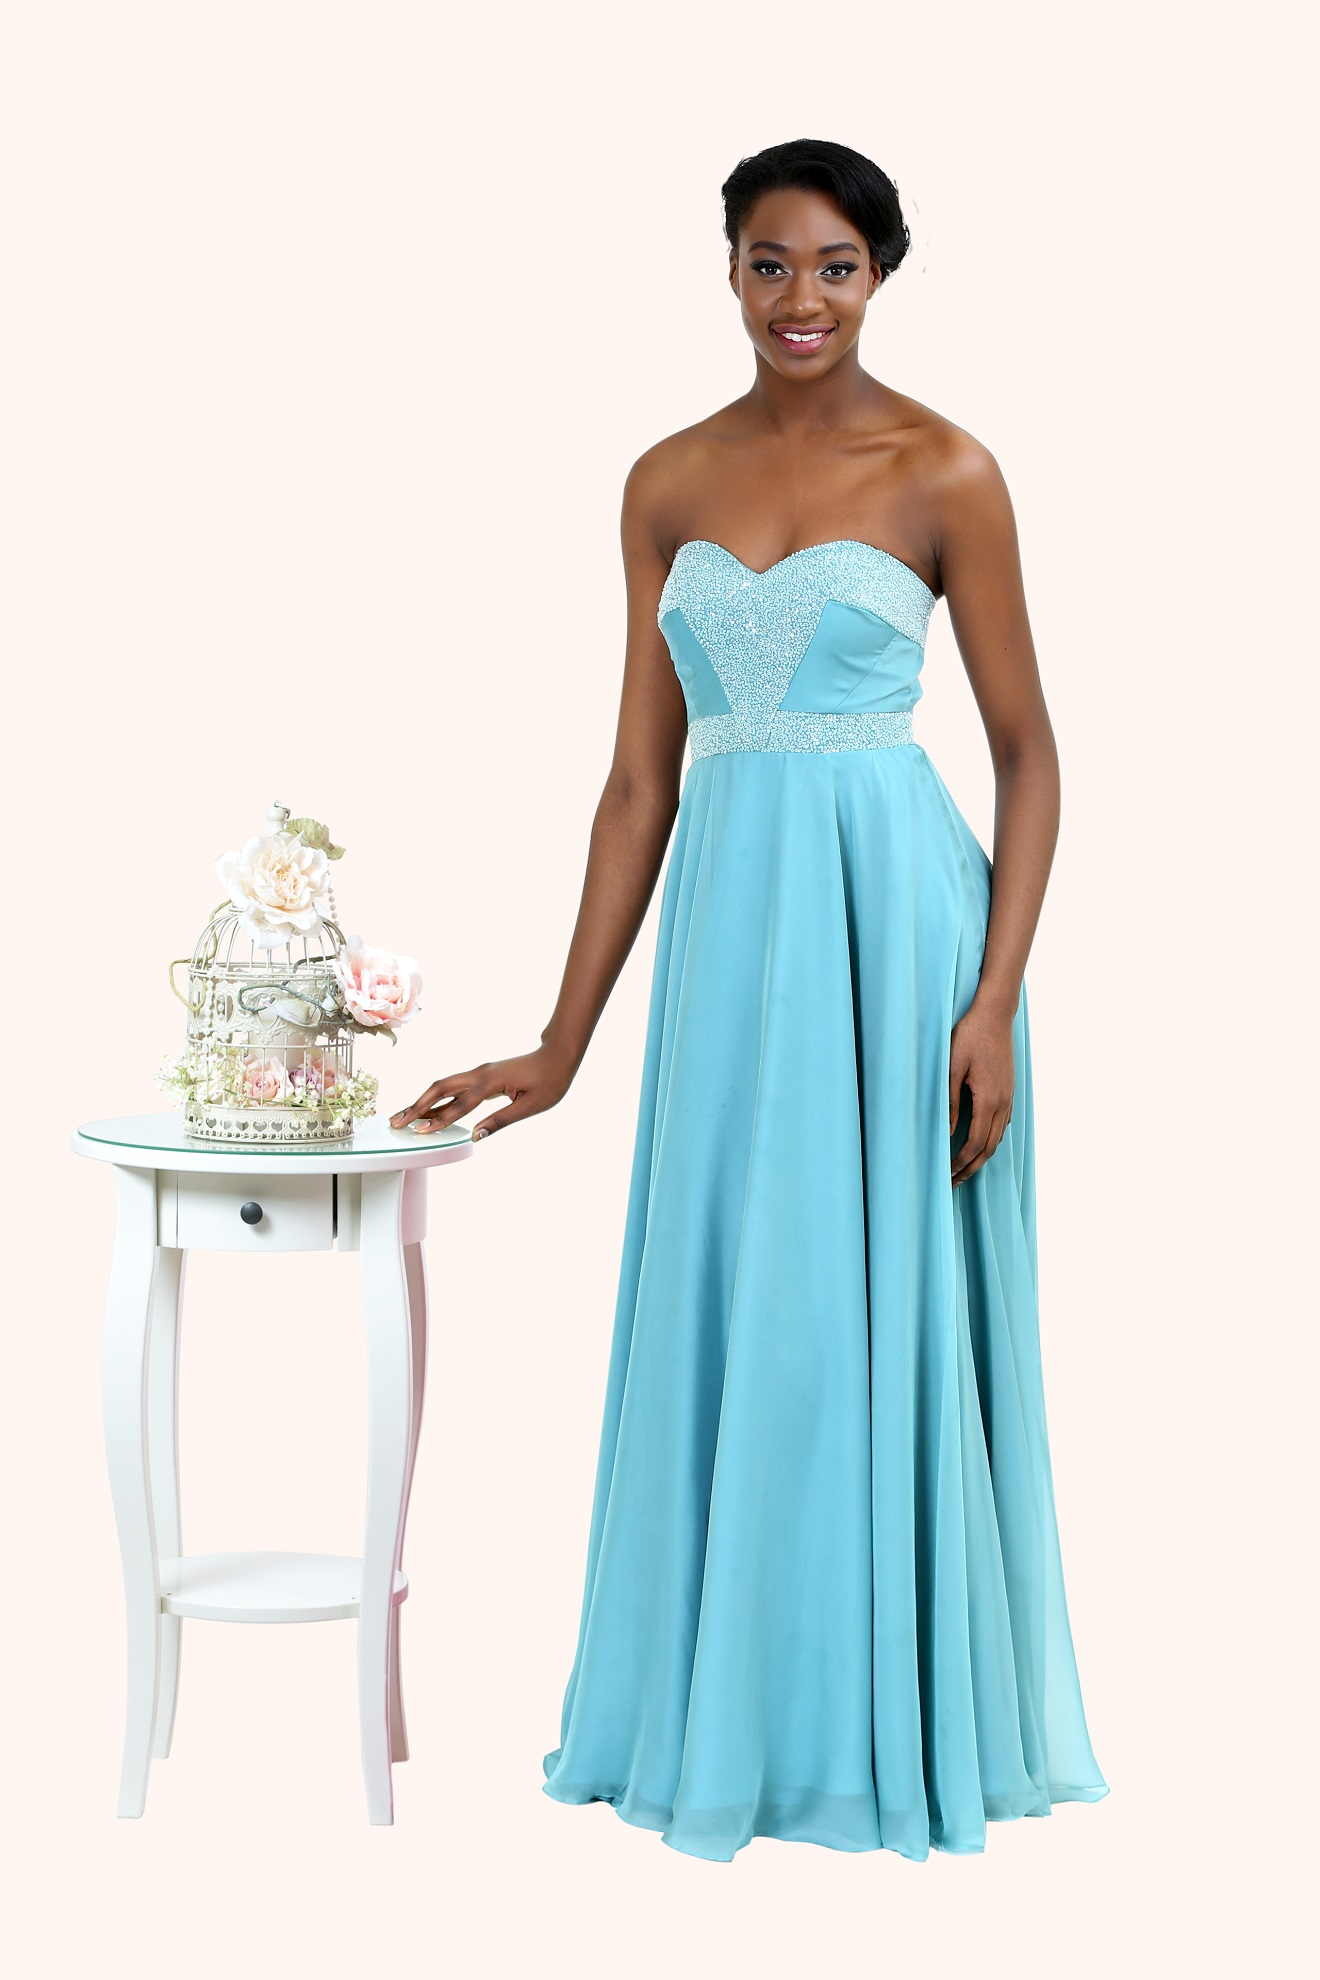 Best Claires Prom Dresses Images - Styles & Ideas 2018 - sperr.us